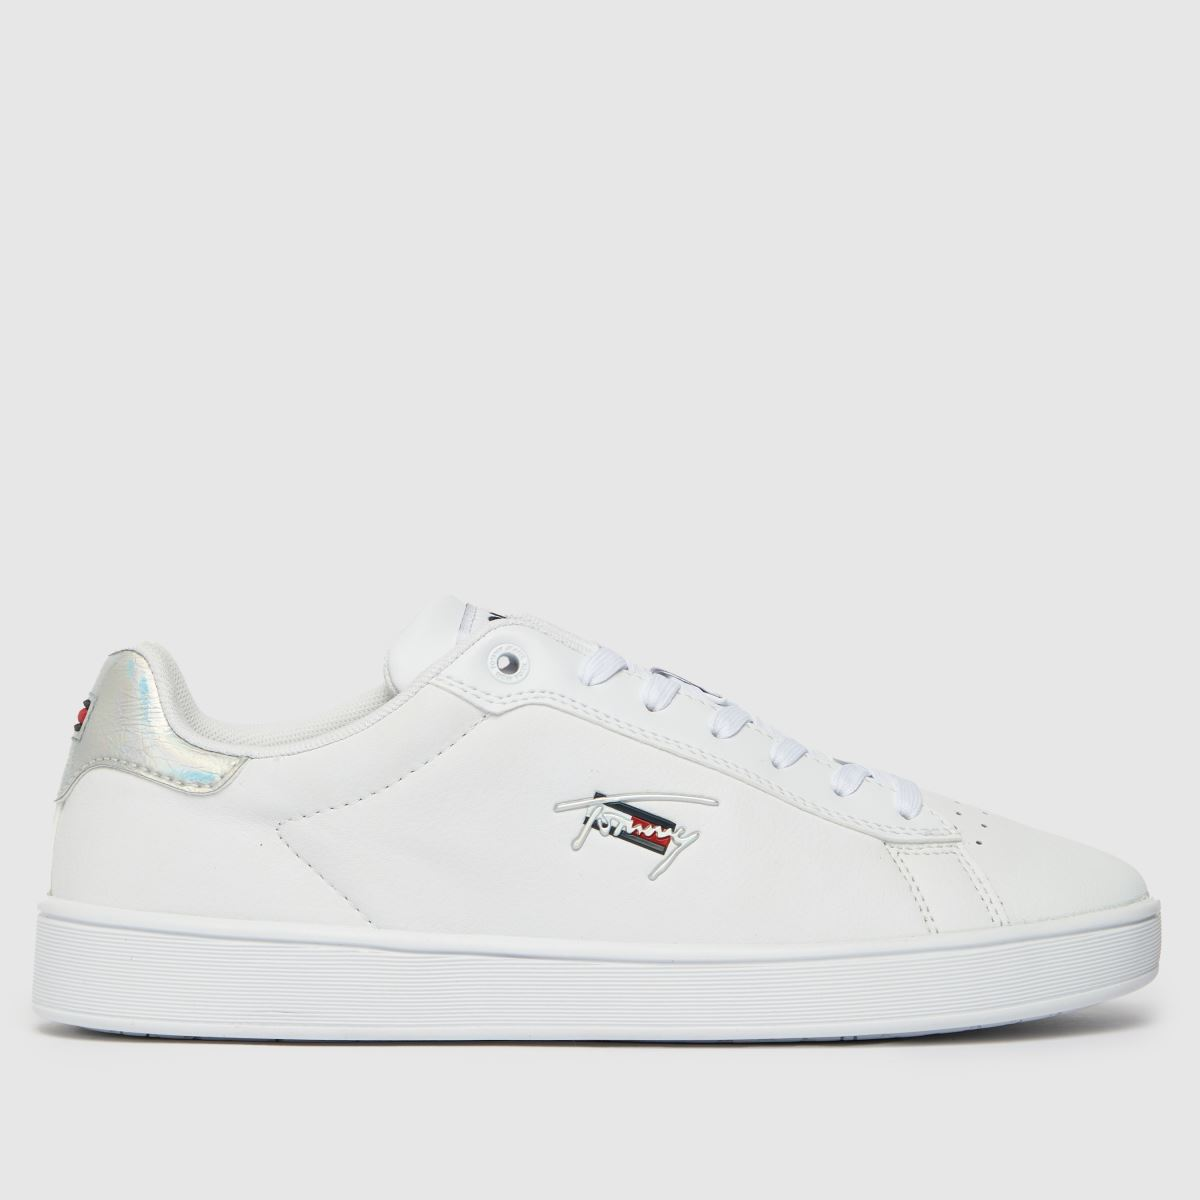 Tommy Hilfiger White & Silver Iridescent Cupsole Trainers